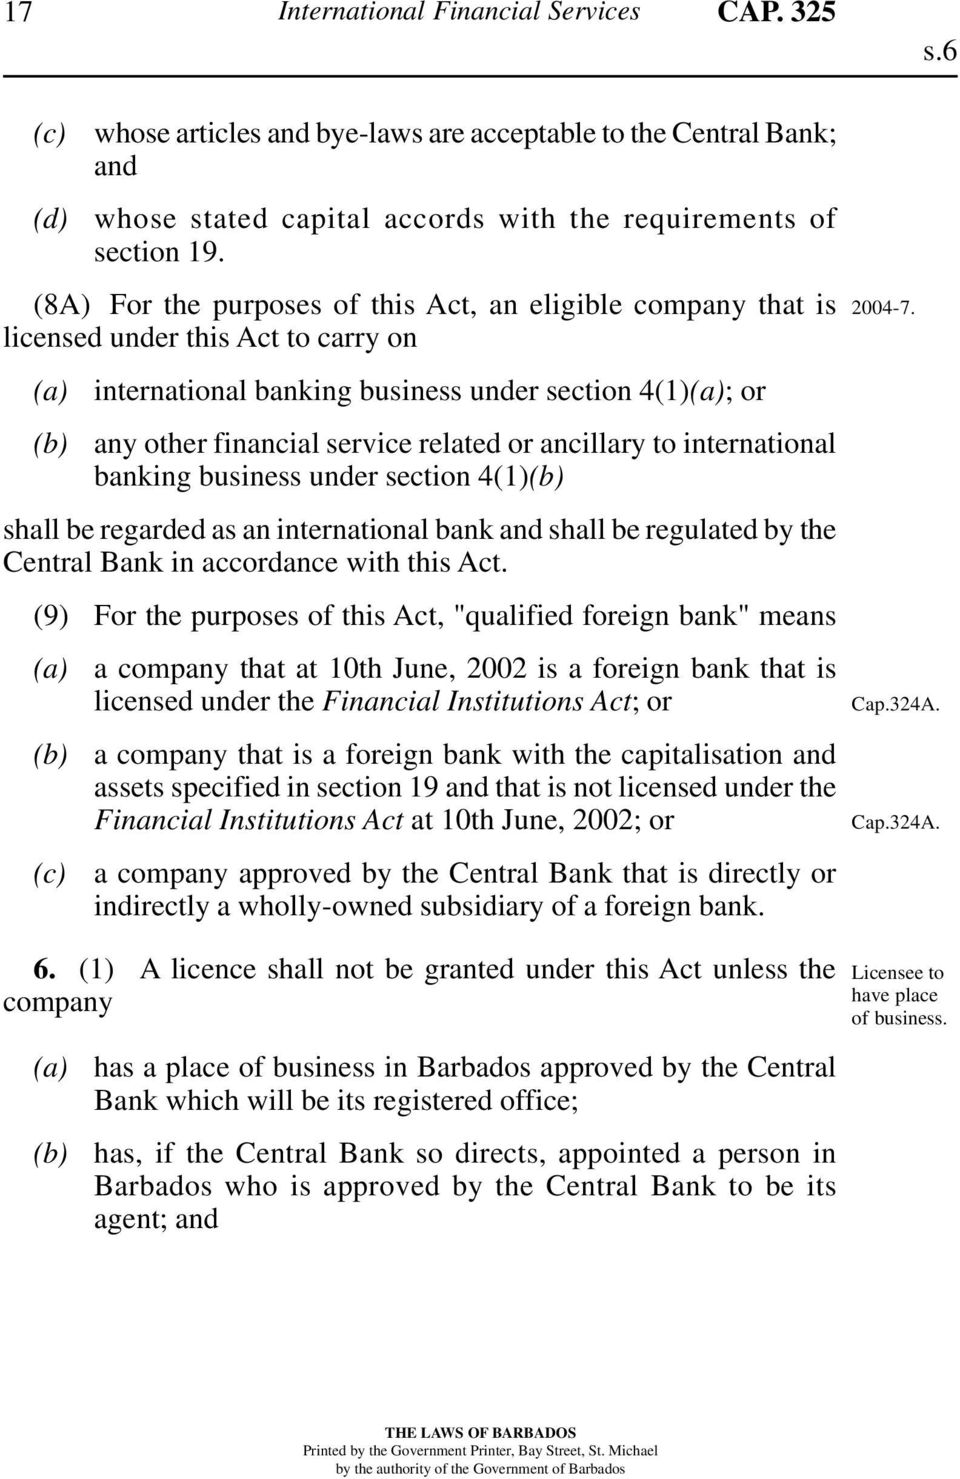 ancillary to international banking business under section 4(1) shall be regarded as an international bank and shall be regulated by the Central Bank in accordance with this Act.